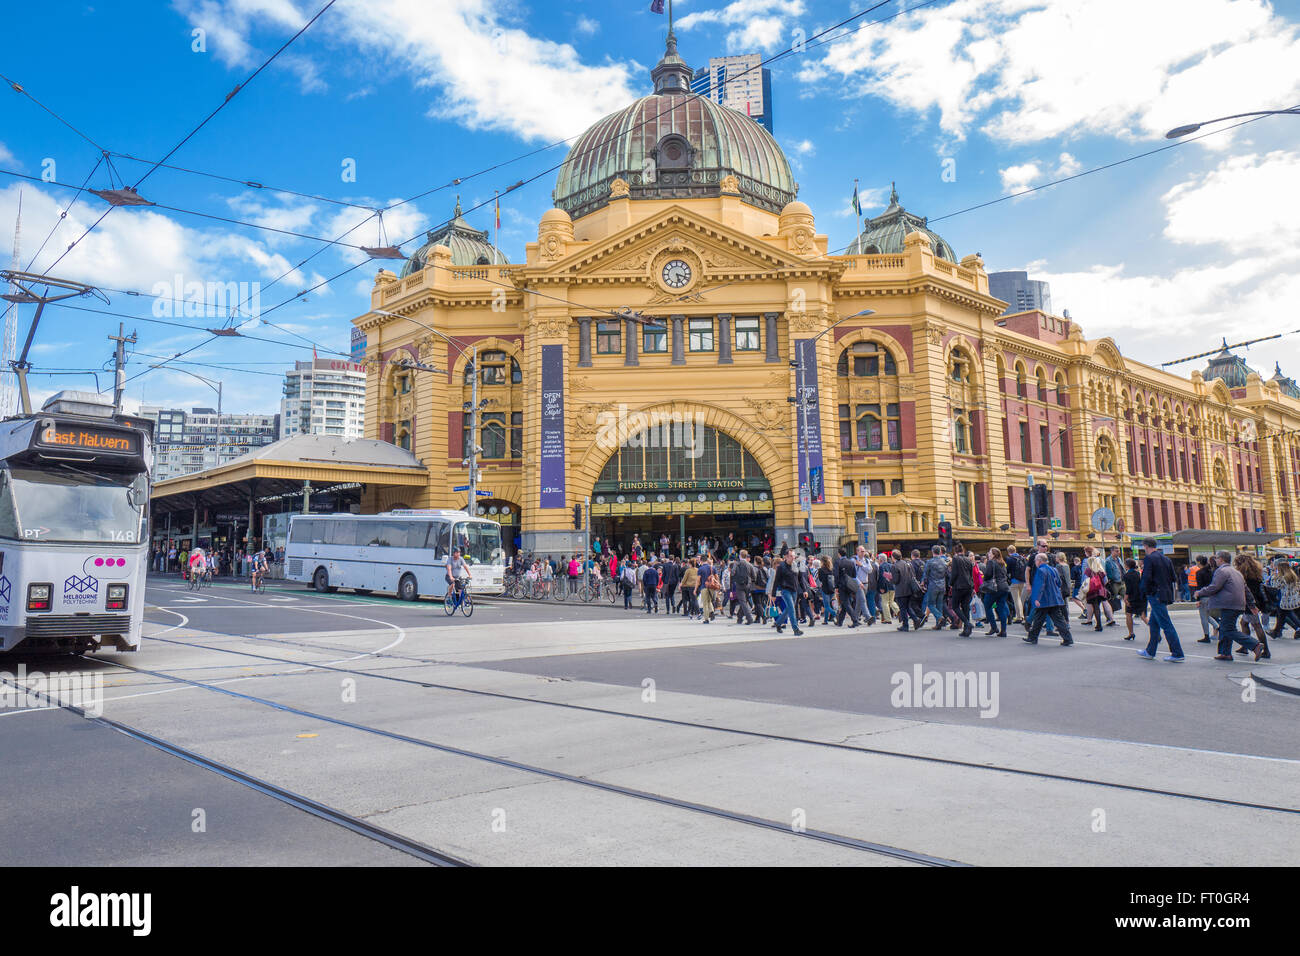 Flinders Street Station is a famous landmark in Melbourne. - Stock Image